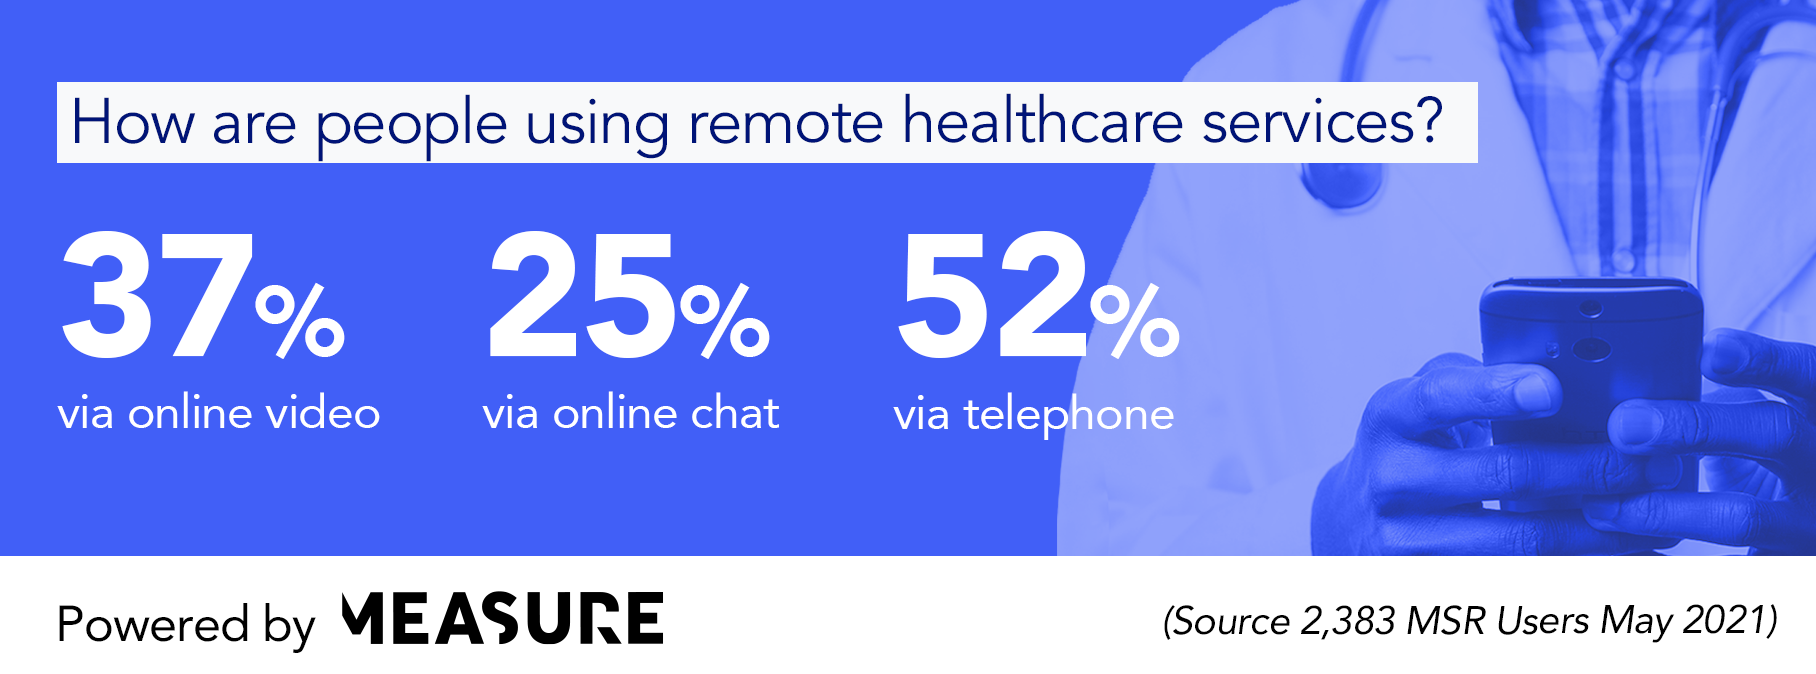 How are people using remote health services?